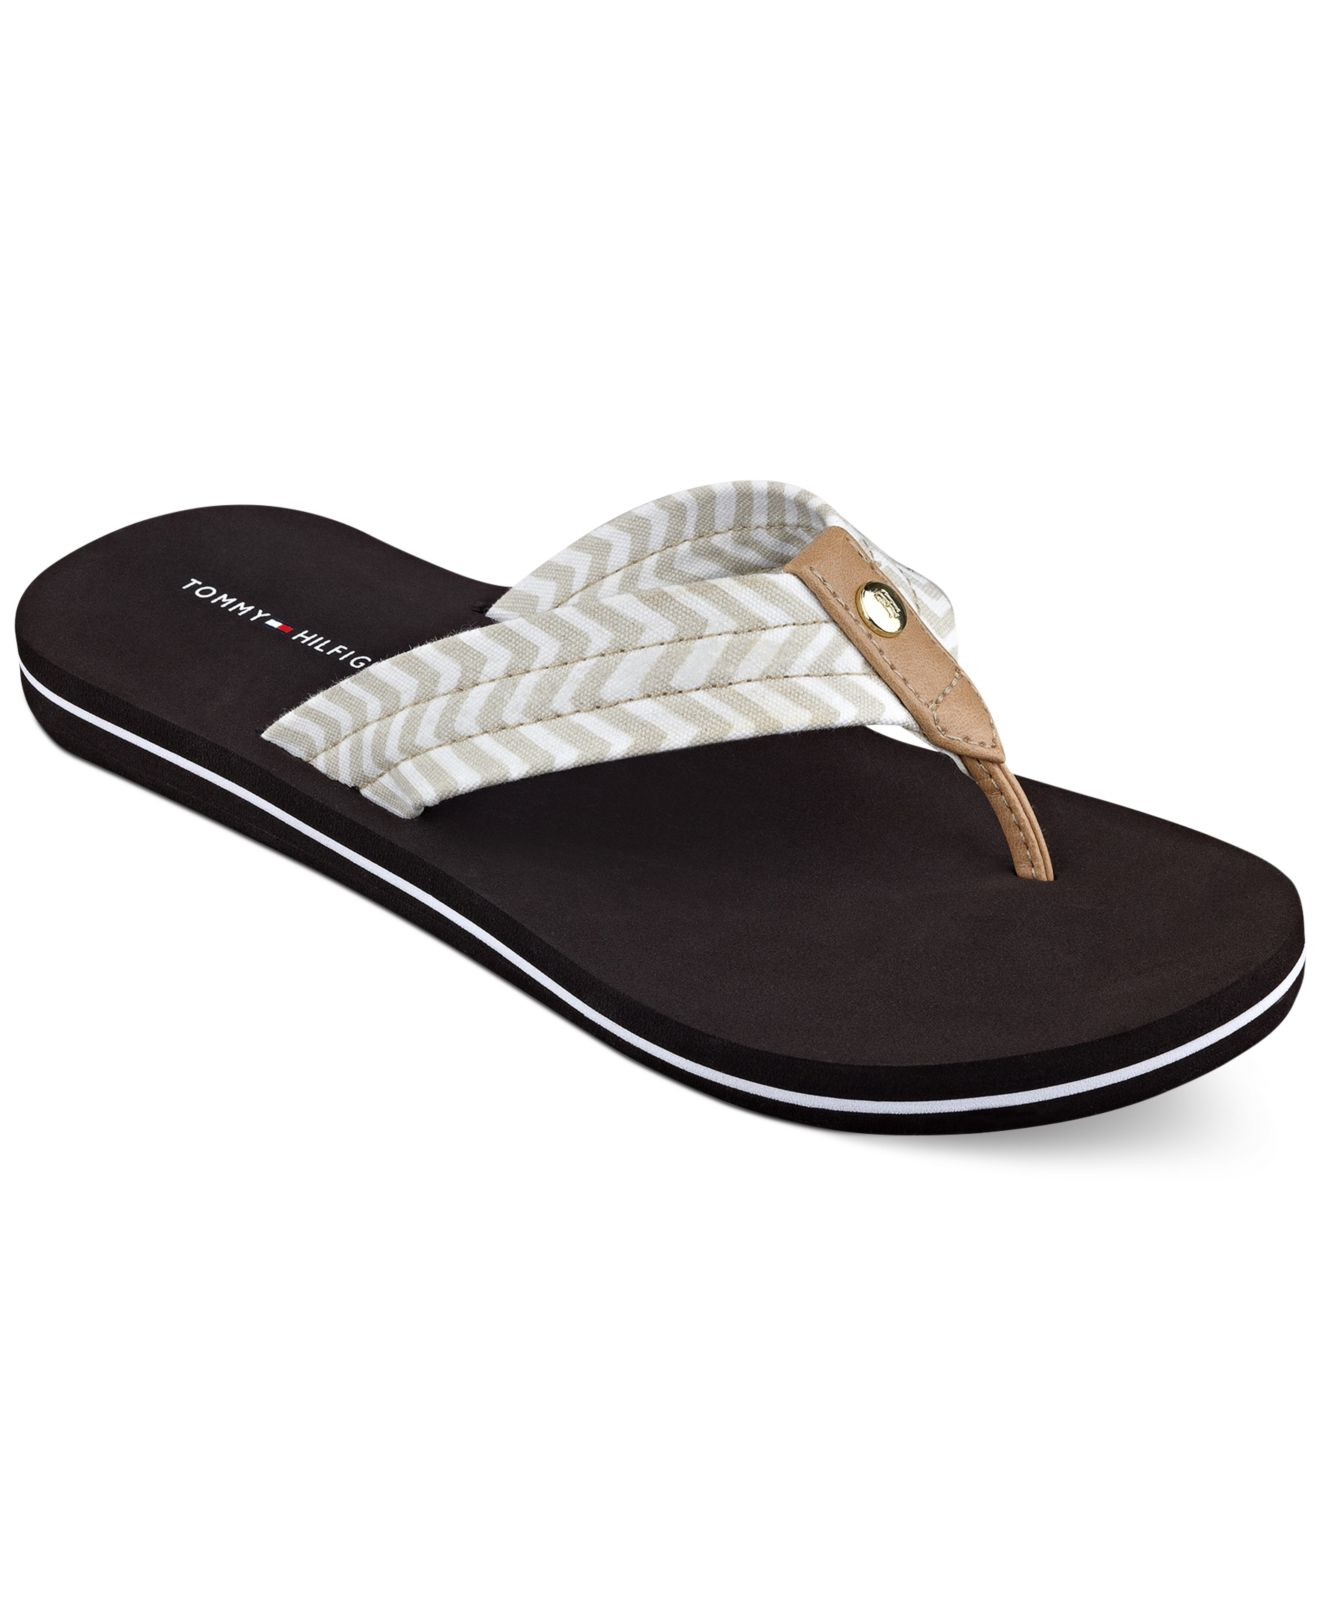 tommy hilfiger women 39 s cave flip flops in black lyst. Black Bedroom Furniture Sets. Home Design Ideas